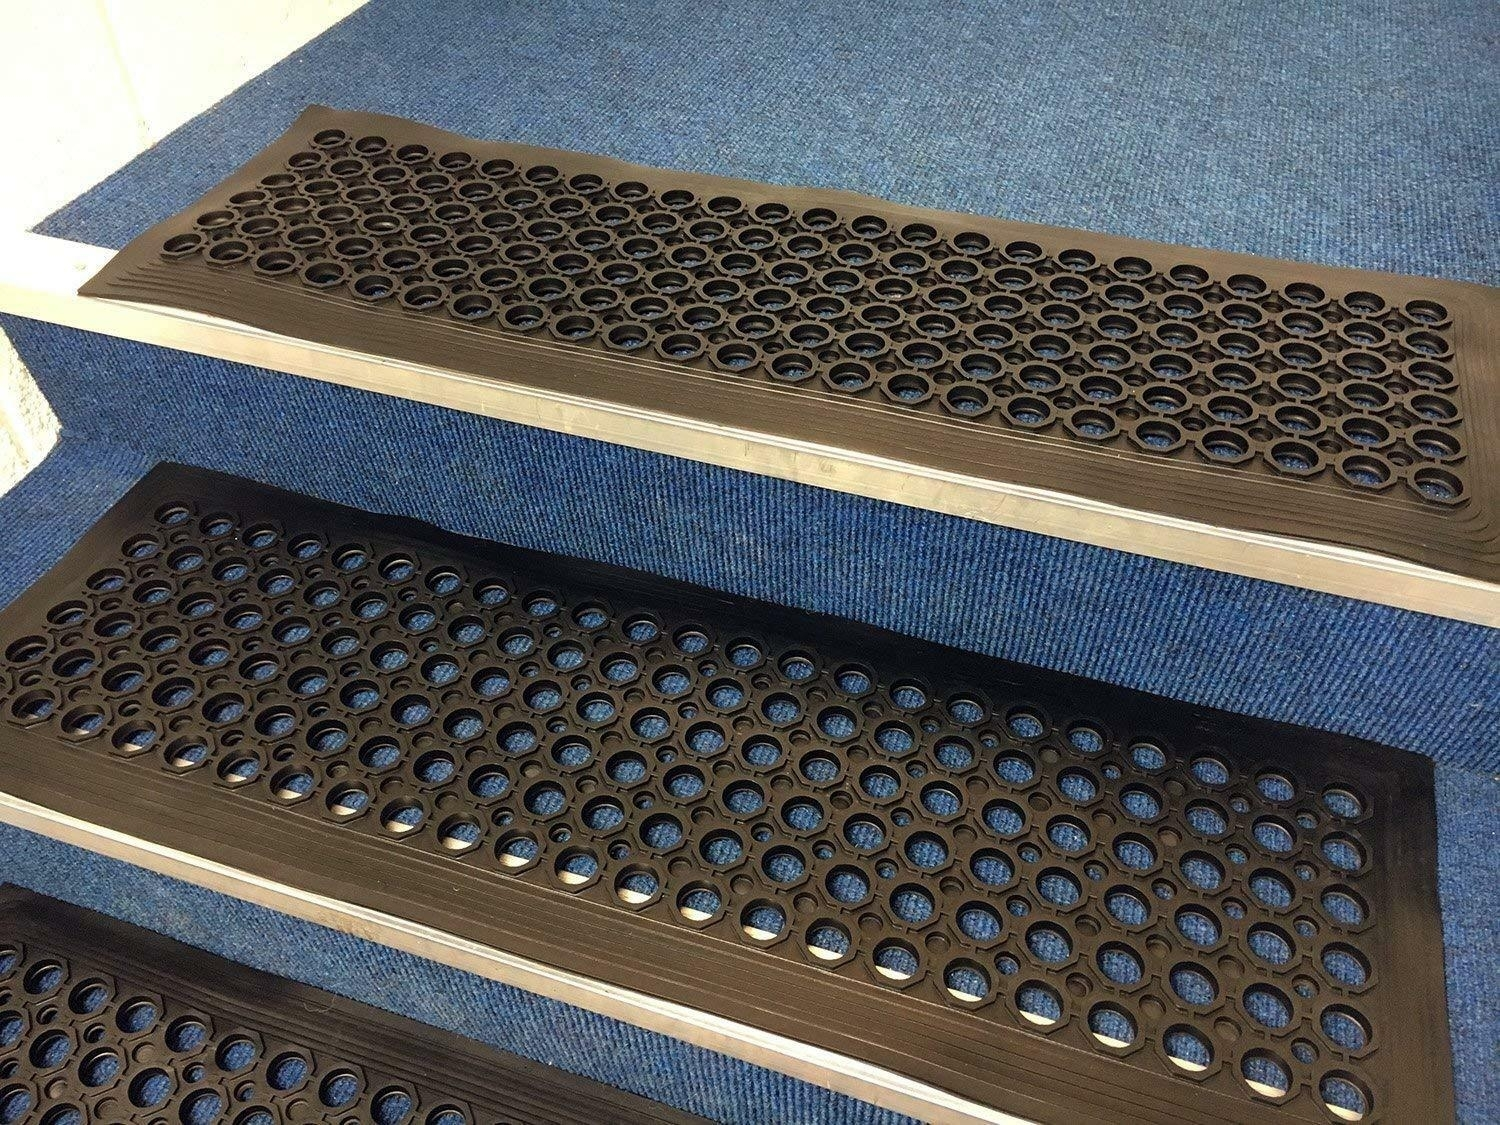 50 Outdoor Rubber Stair Treads You Ll Love In 2020 Visual Hunt   Outdoor Tread For Steps   Pressure Treated   Wood   Deck Stairs   Non Slip   Granite